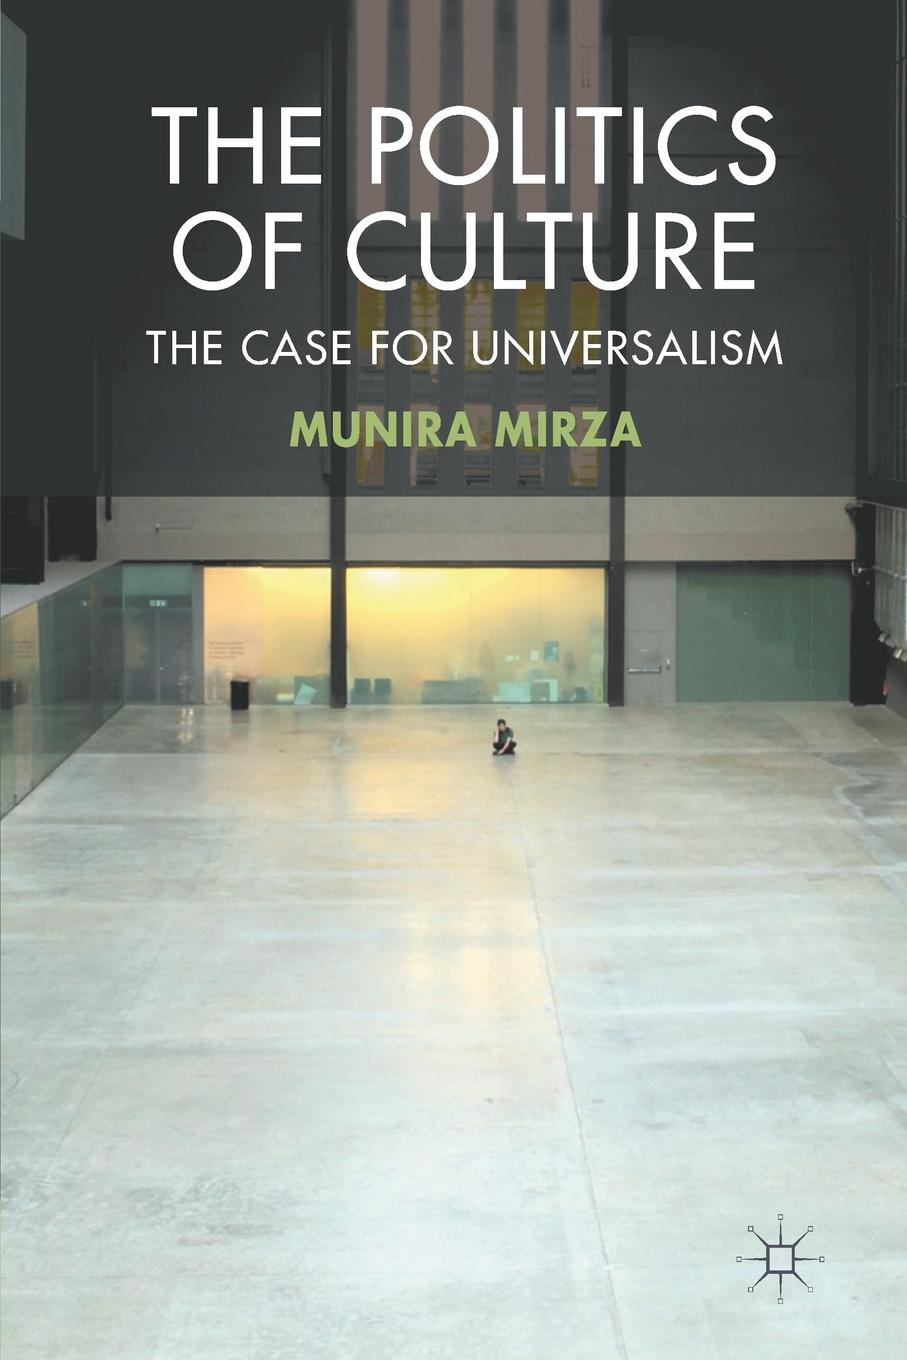 лучшая цена M. Mirza The Politics of Culture. The Case for Universalism